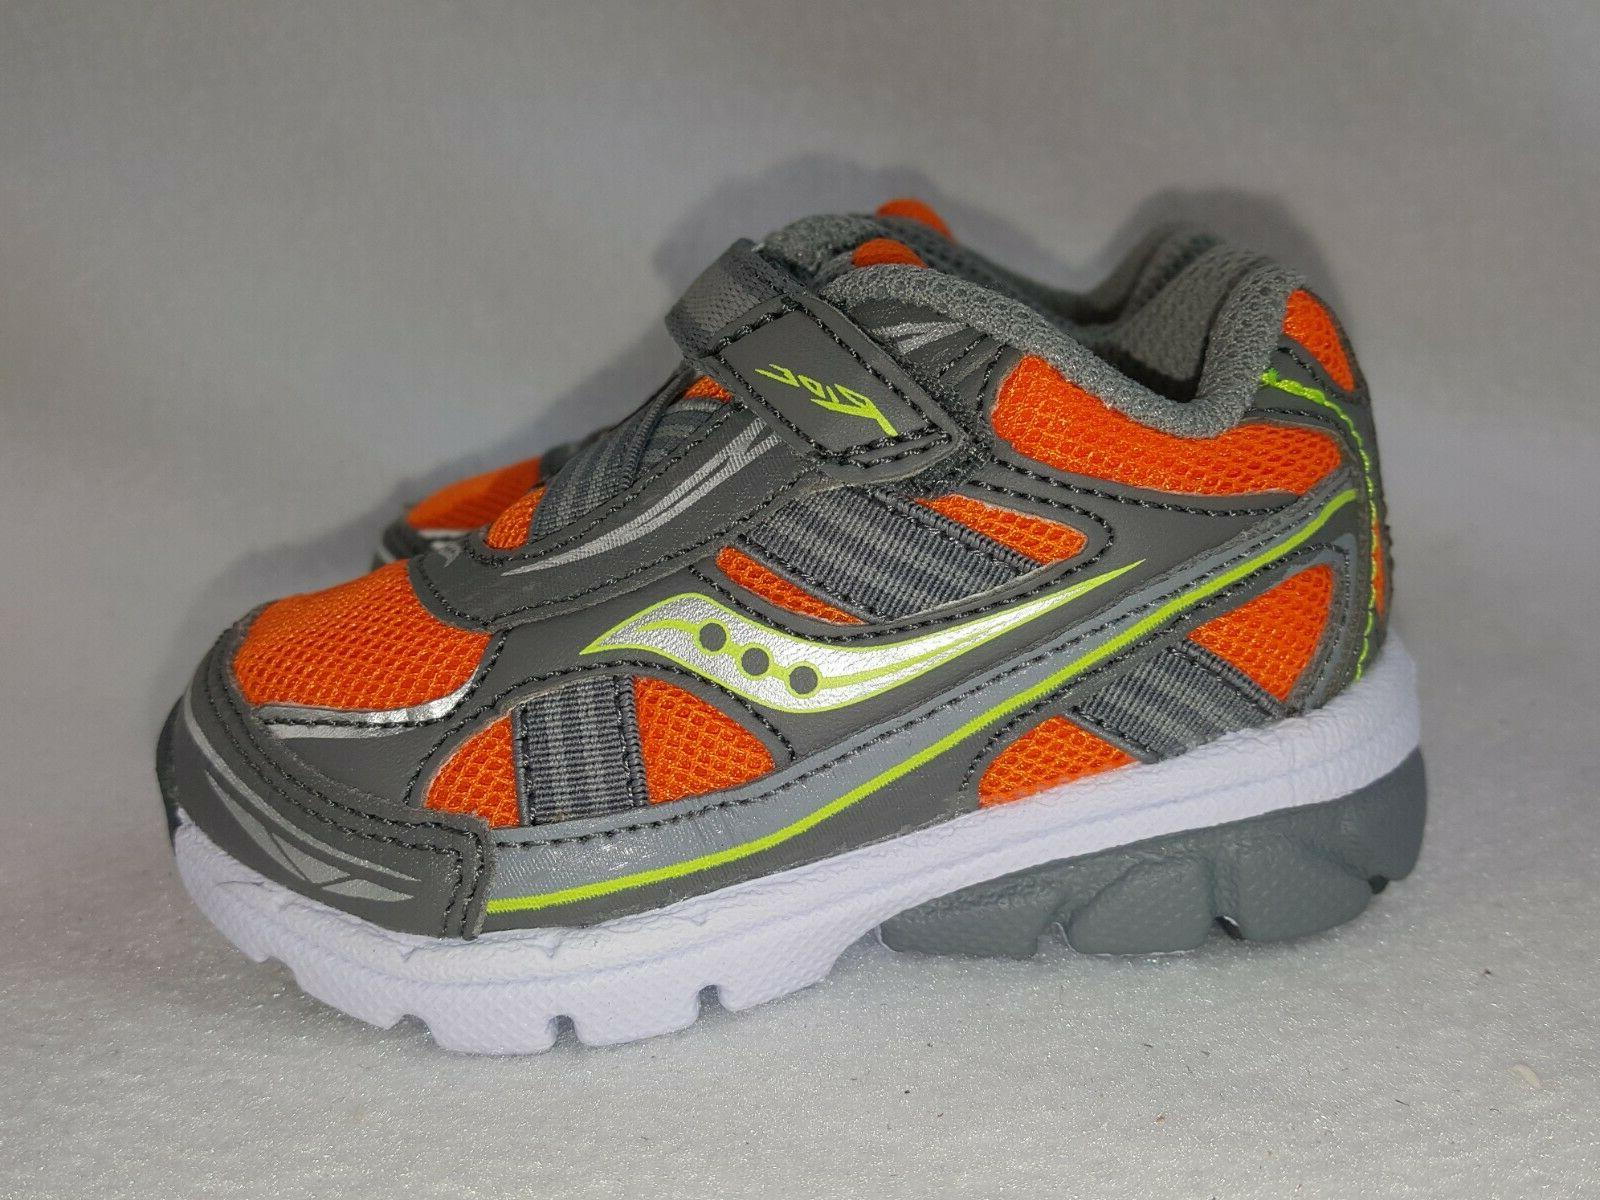 Saucony Shoes Boys Toddler Size 4.5 Wide Orange/Gray Sneaker